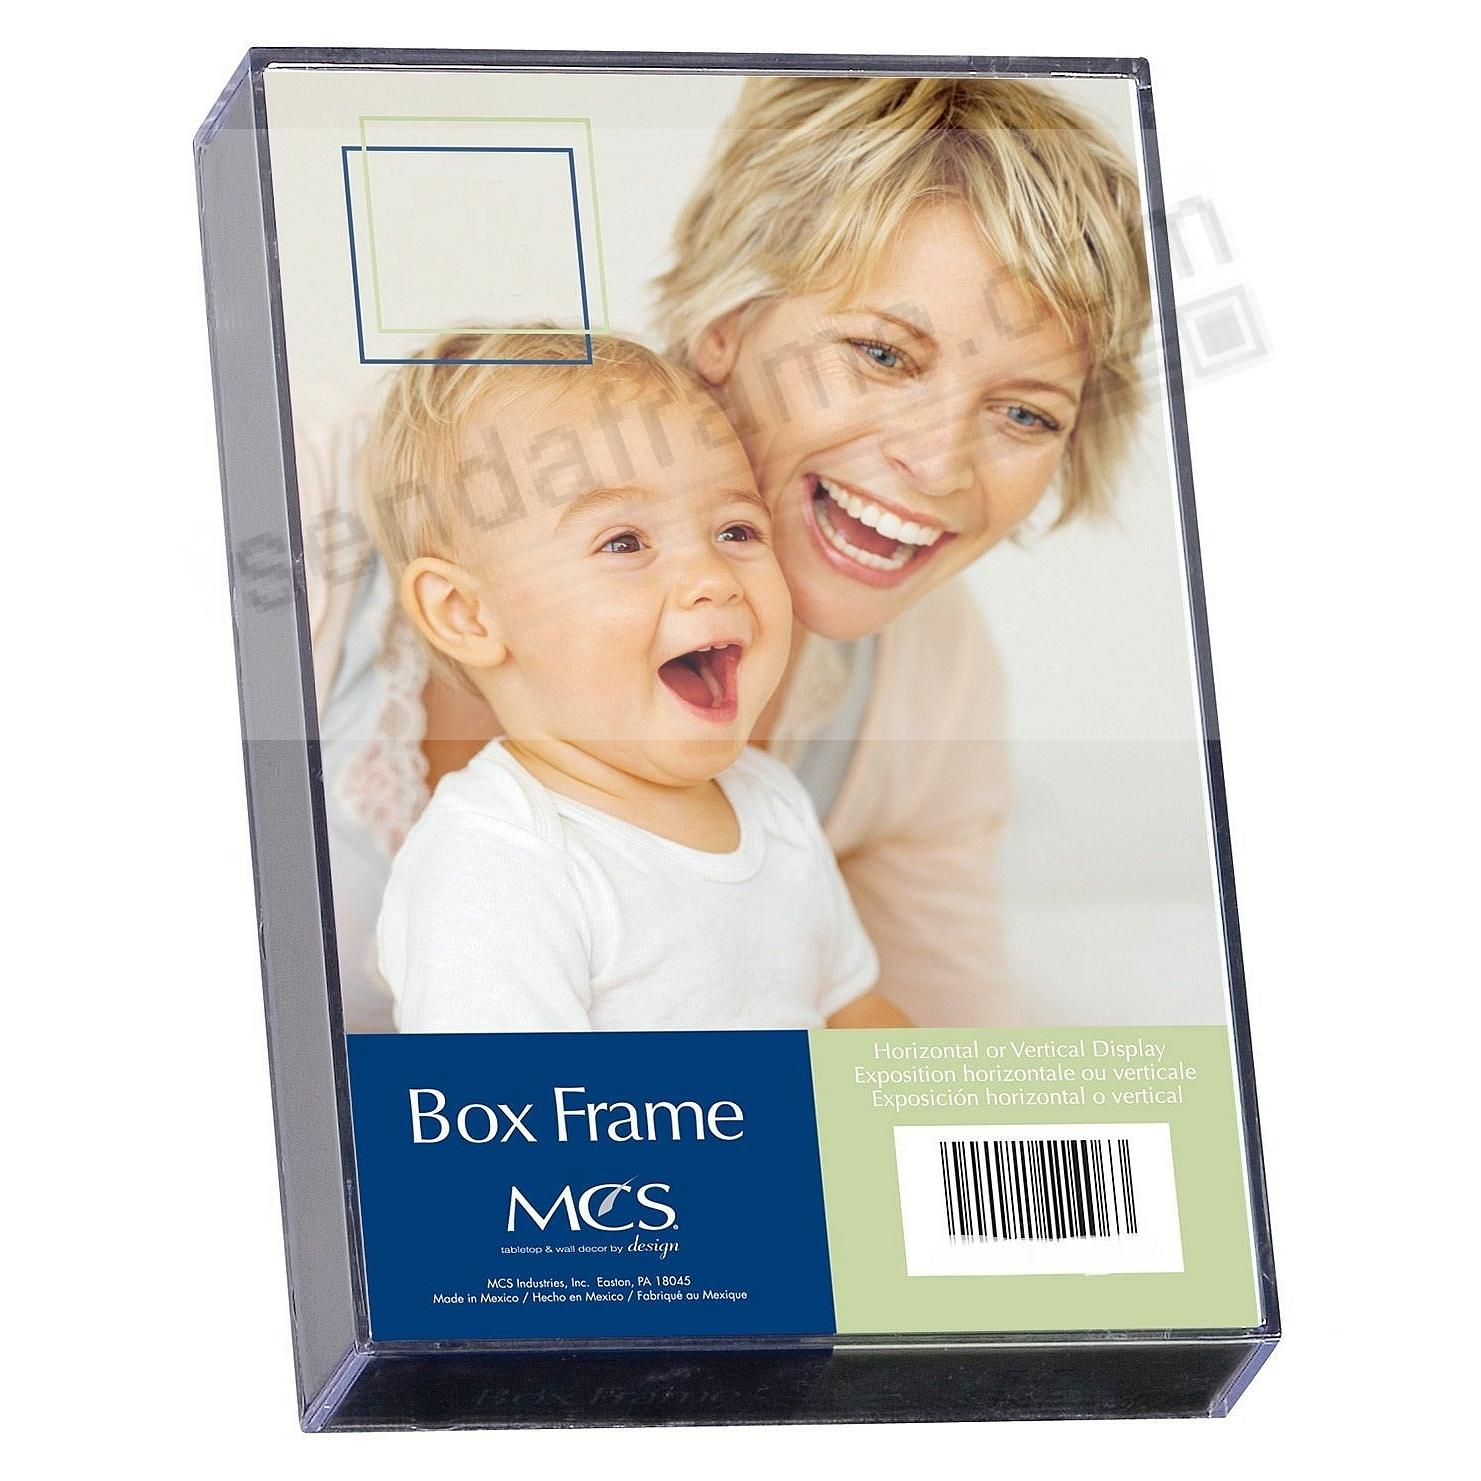 The Acrylic BOX 8x12 Frame - Picture Frames, Photo Albums ...